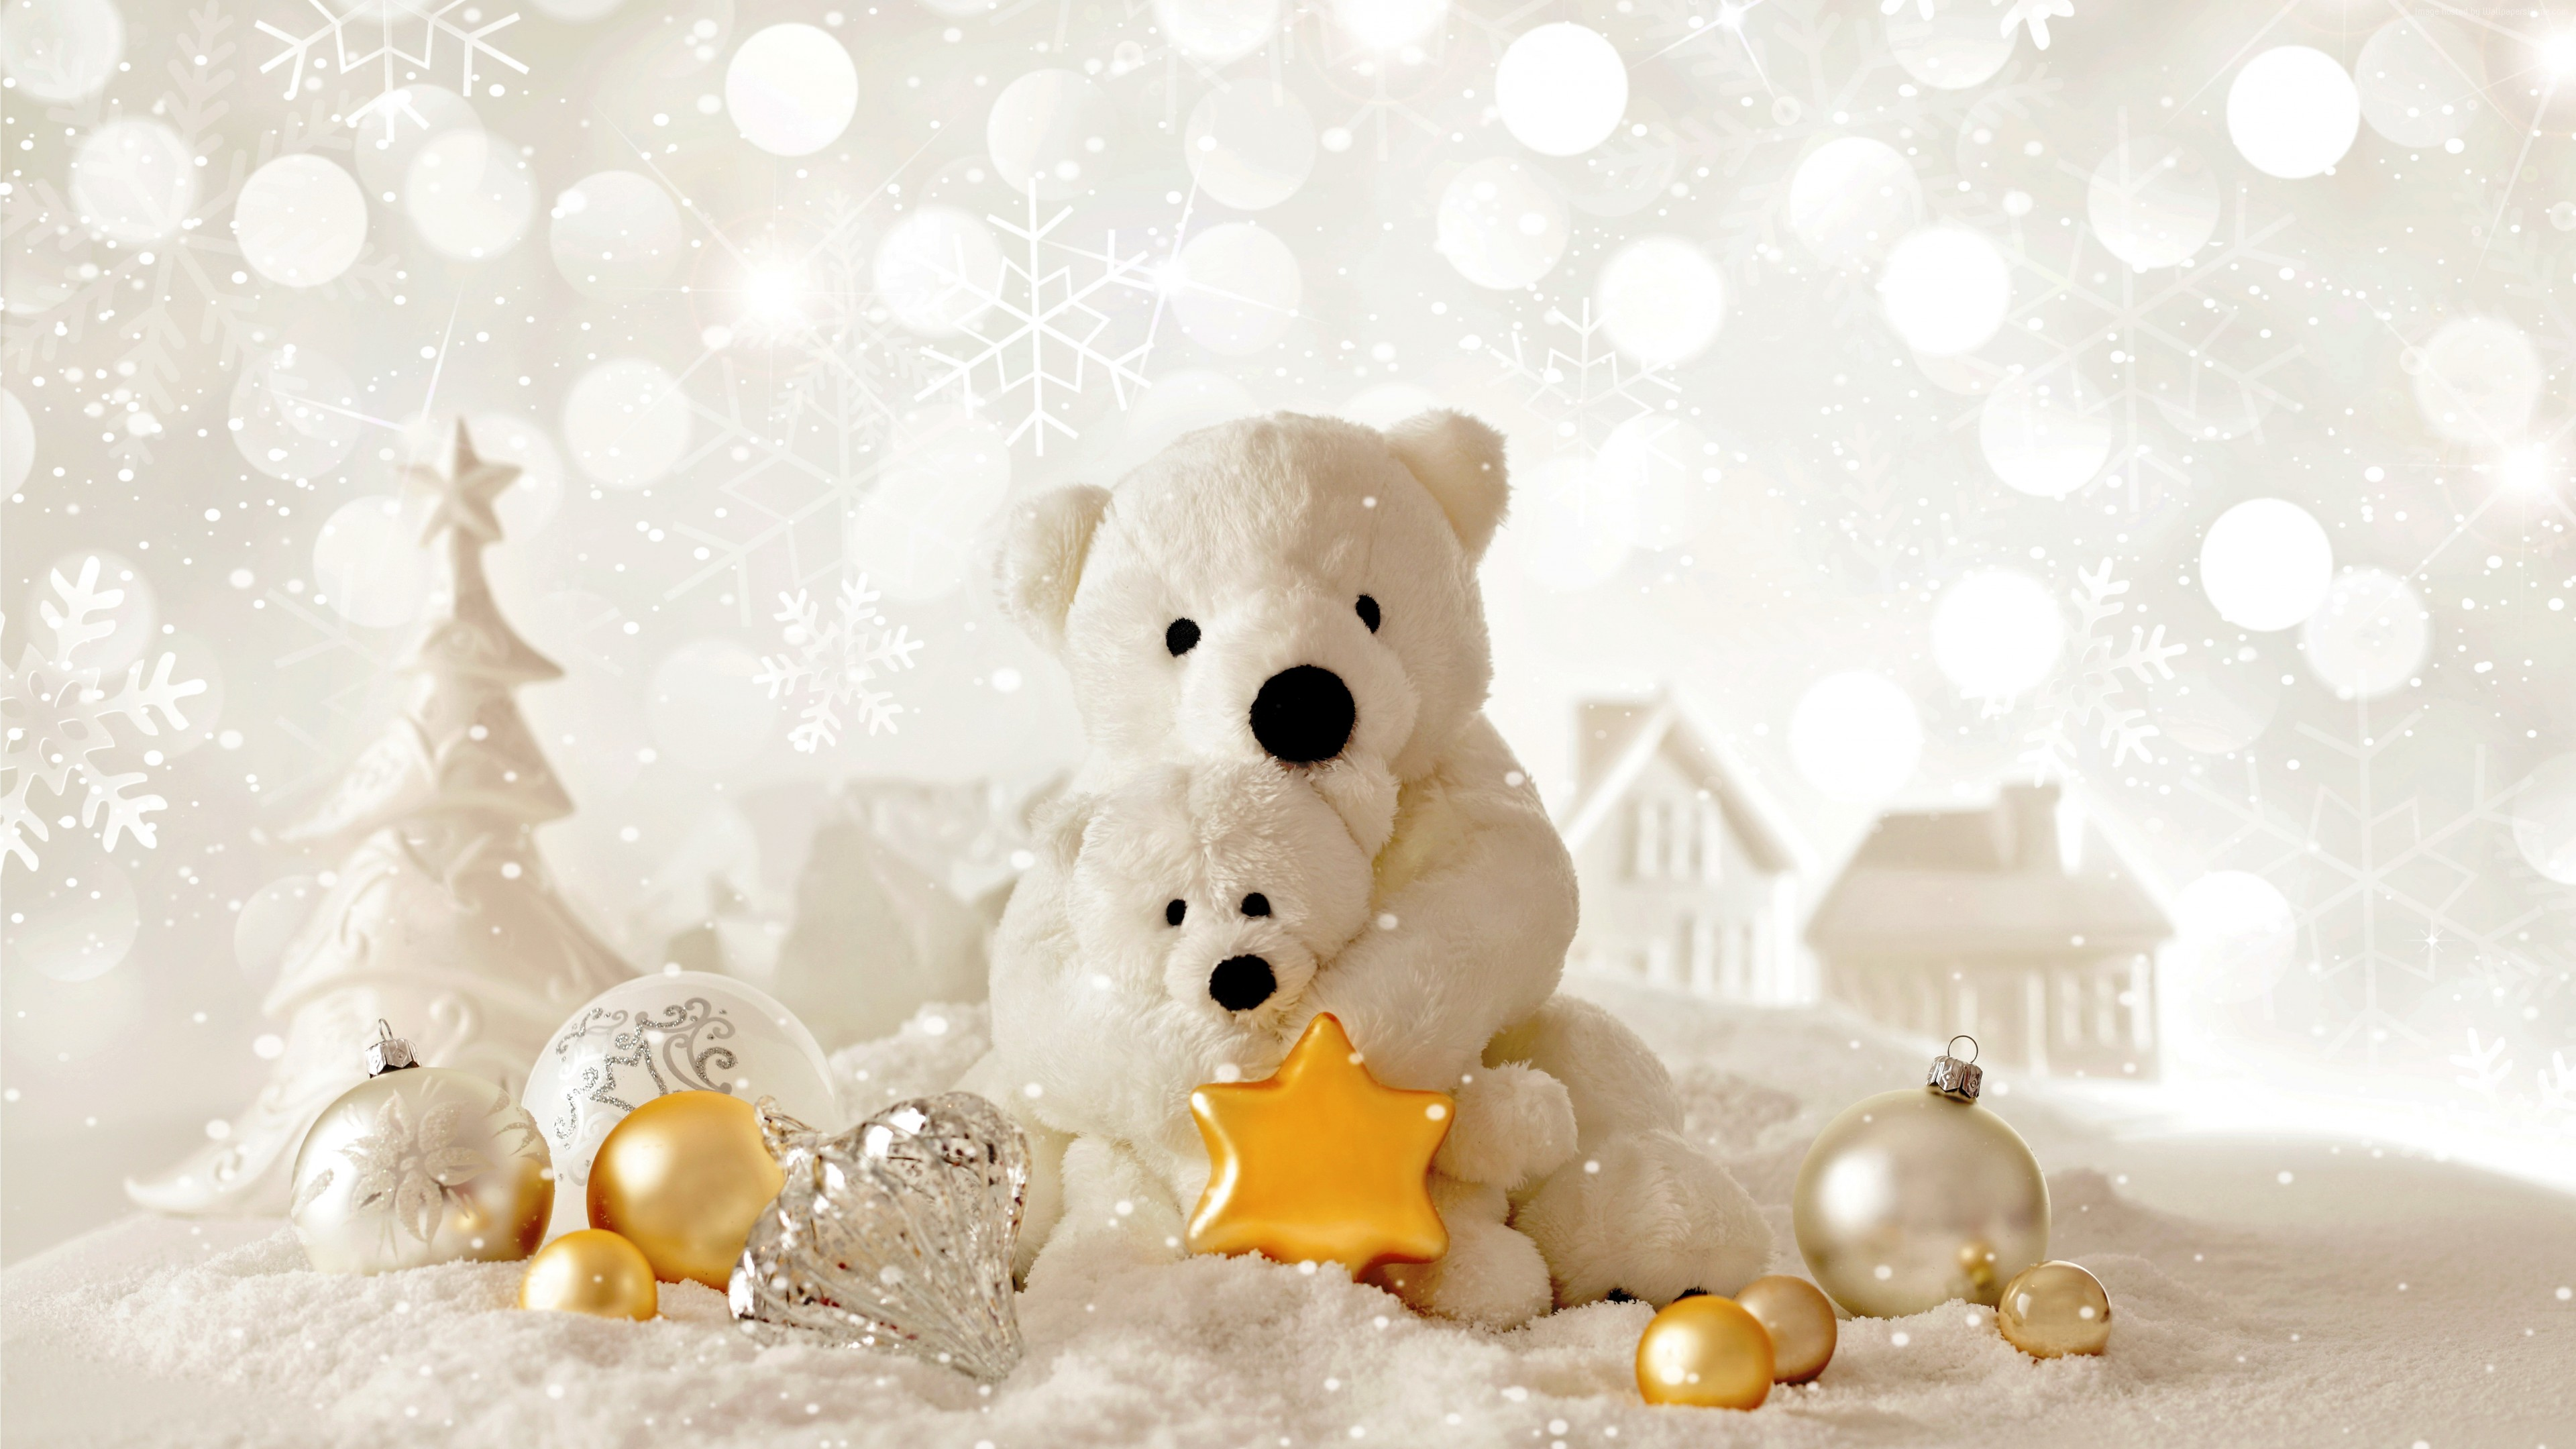 Wallpaper Christmas, New Year, Bear, decorations, Holidays